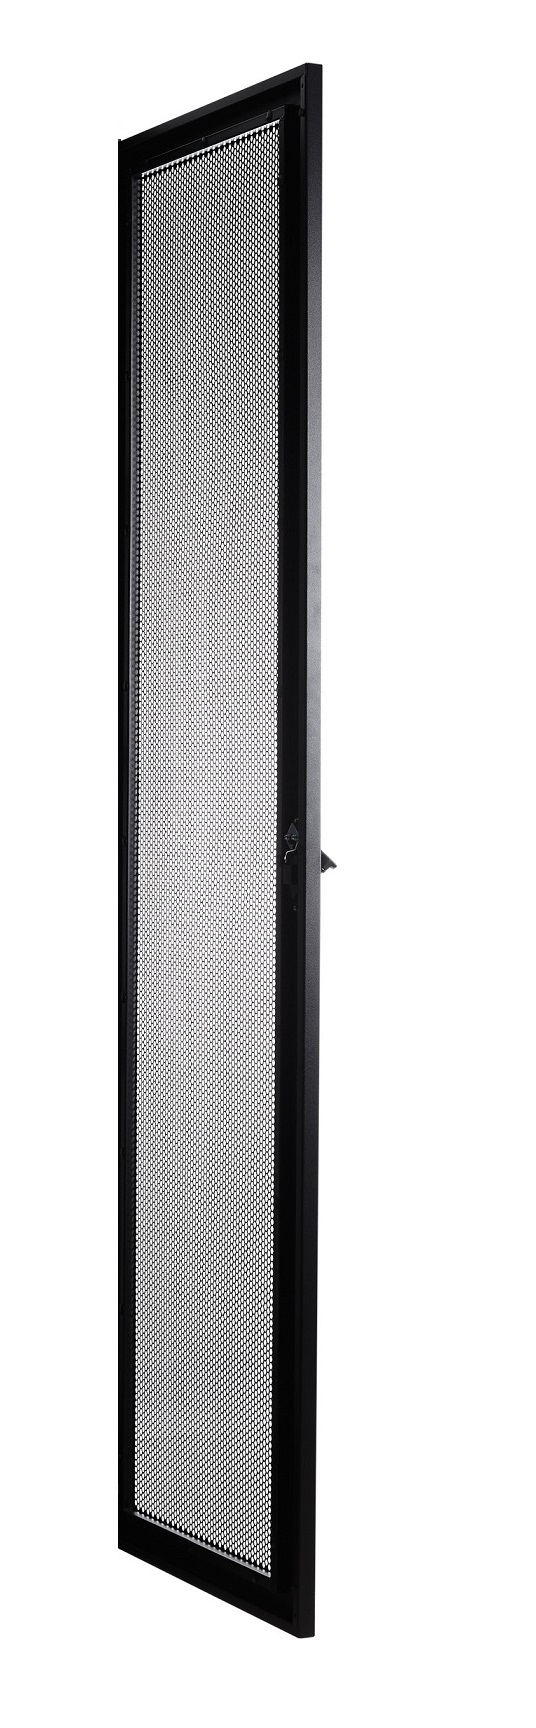 DigitMX NETPRO NP-CDP42U 19'' Fully Perforated Front Door for 42U cabinets